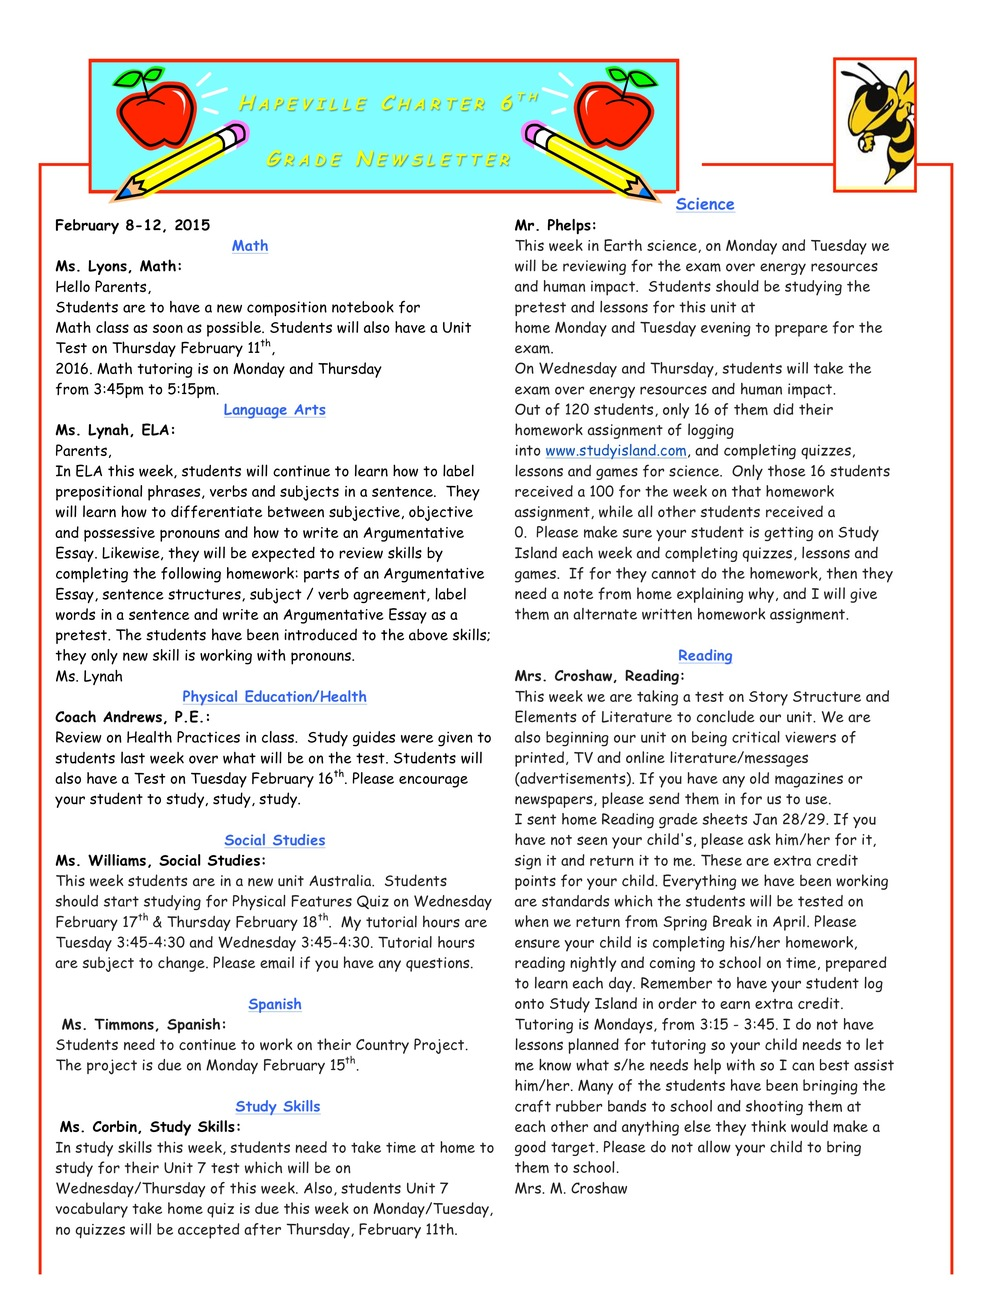 Newsletter Image6th grade Newsletter Feb 8-12.jpeg